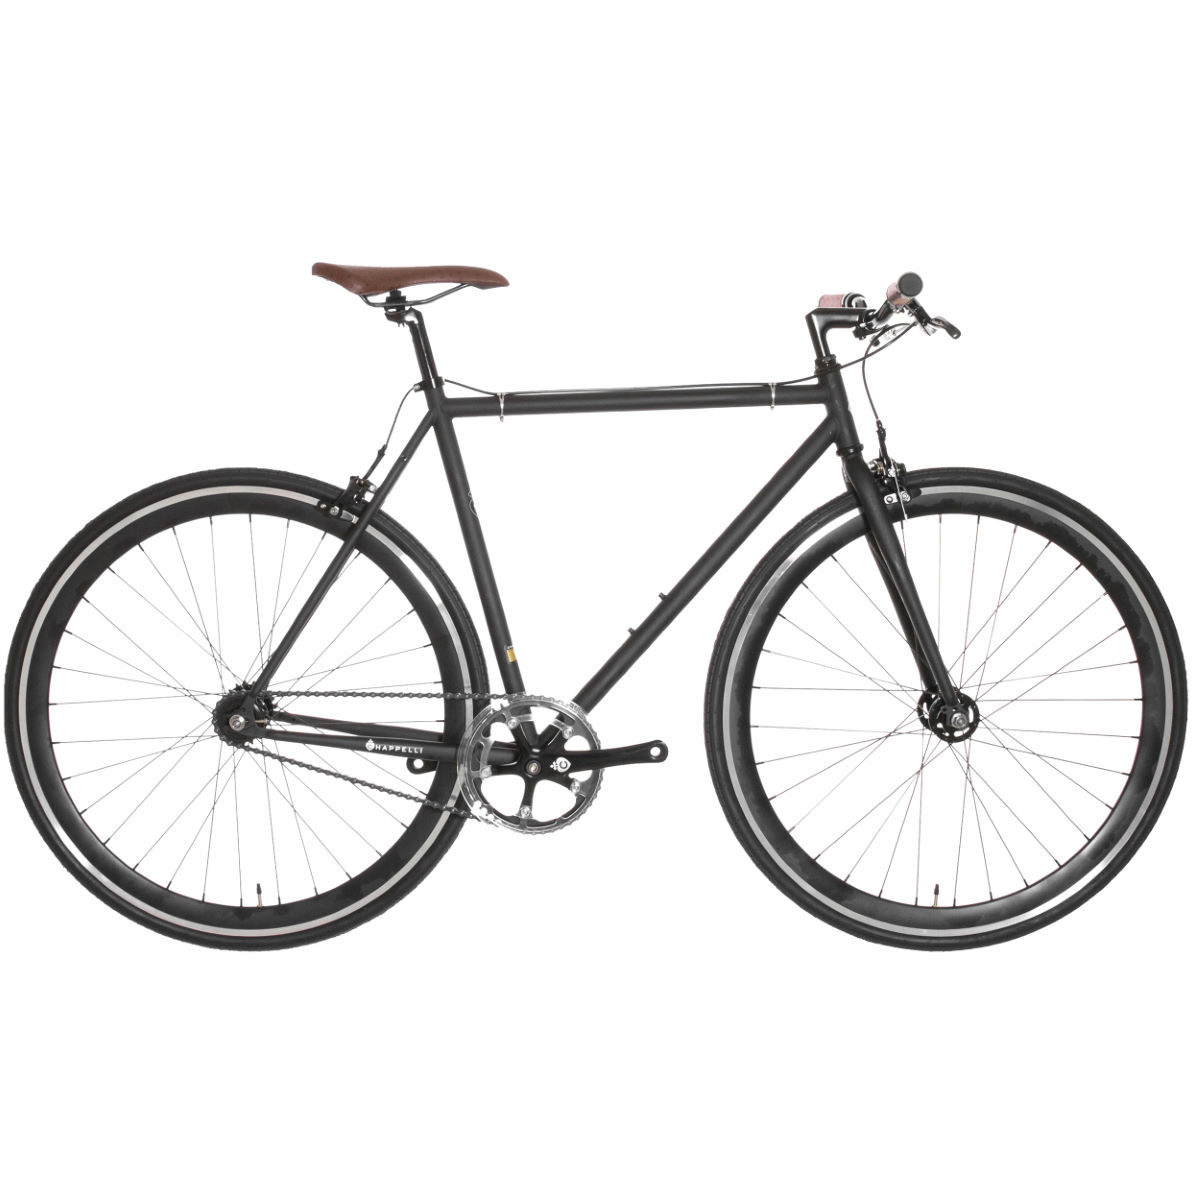 Vélo Chappelli Modern Single Speed (2016) - 58cm Noir/Noir Single speed